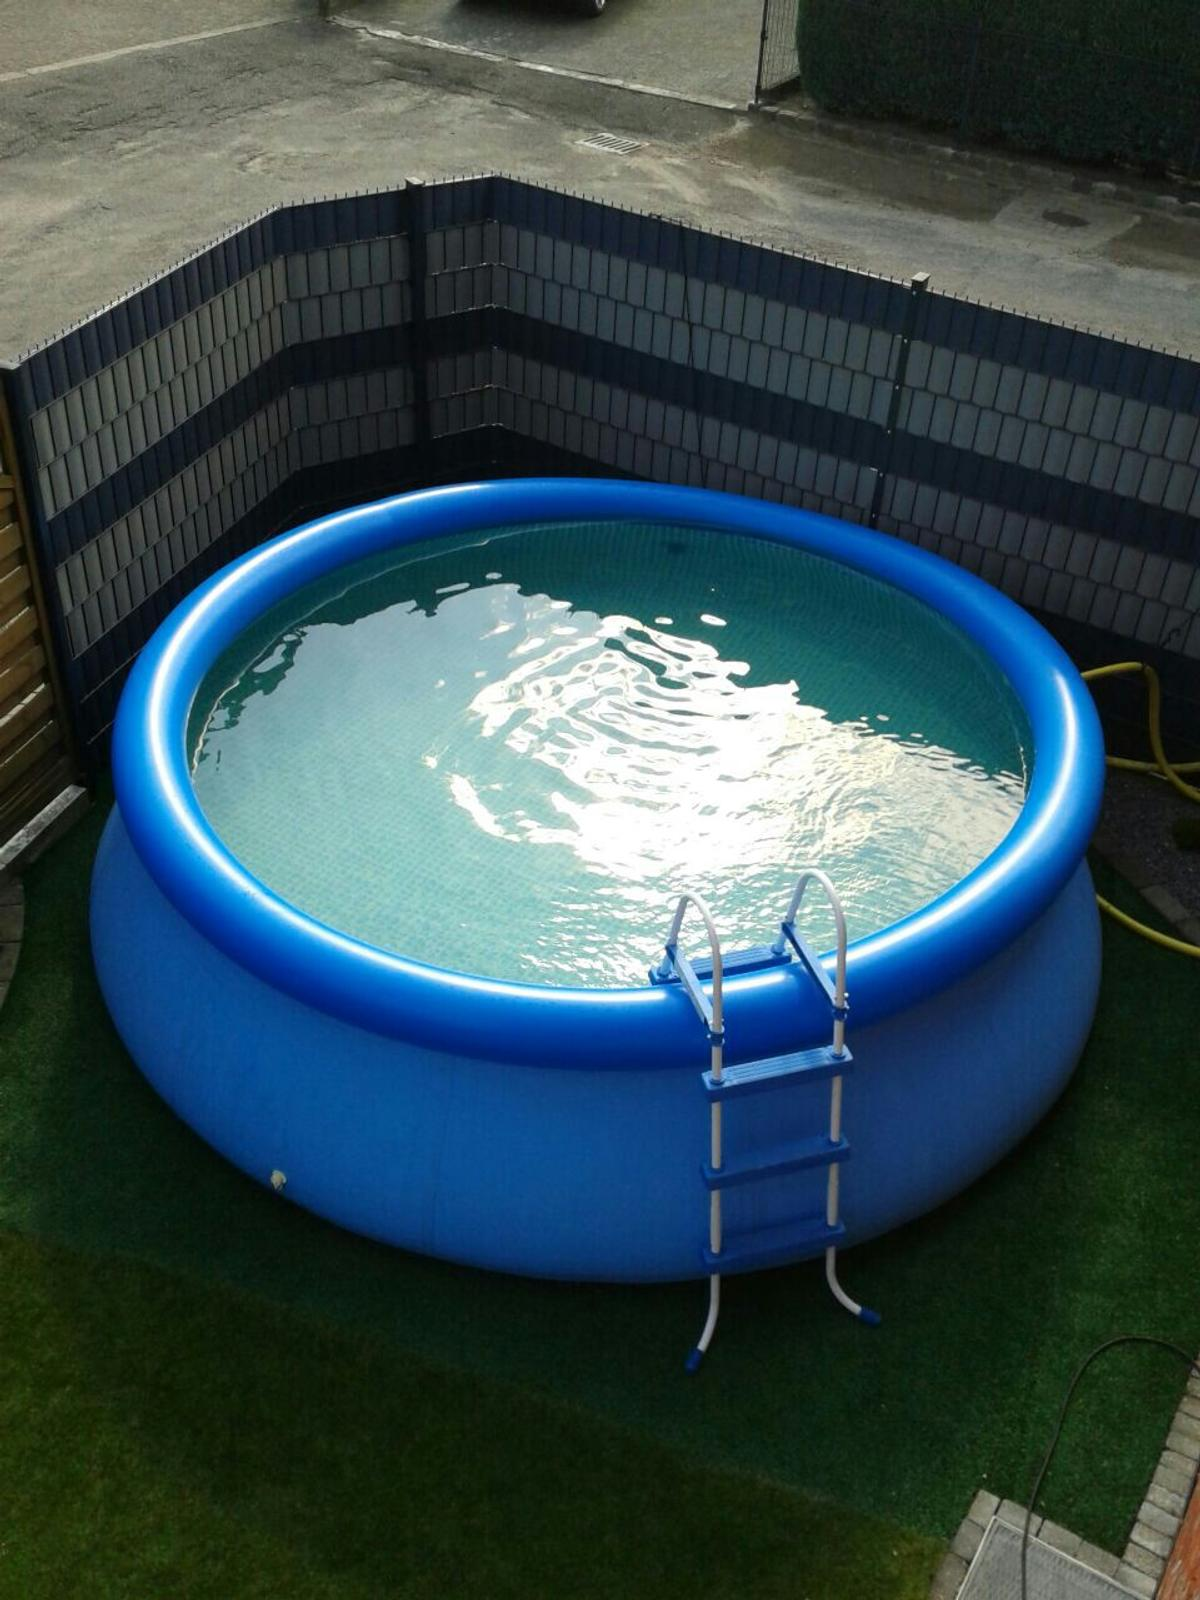 Pool Mit Filter Und Abdeckung Intex Easy Set Pool 366x91 Leiter Pumpe